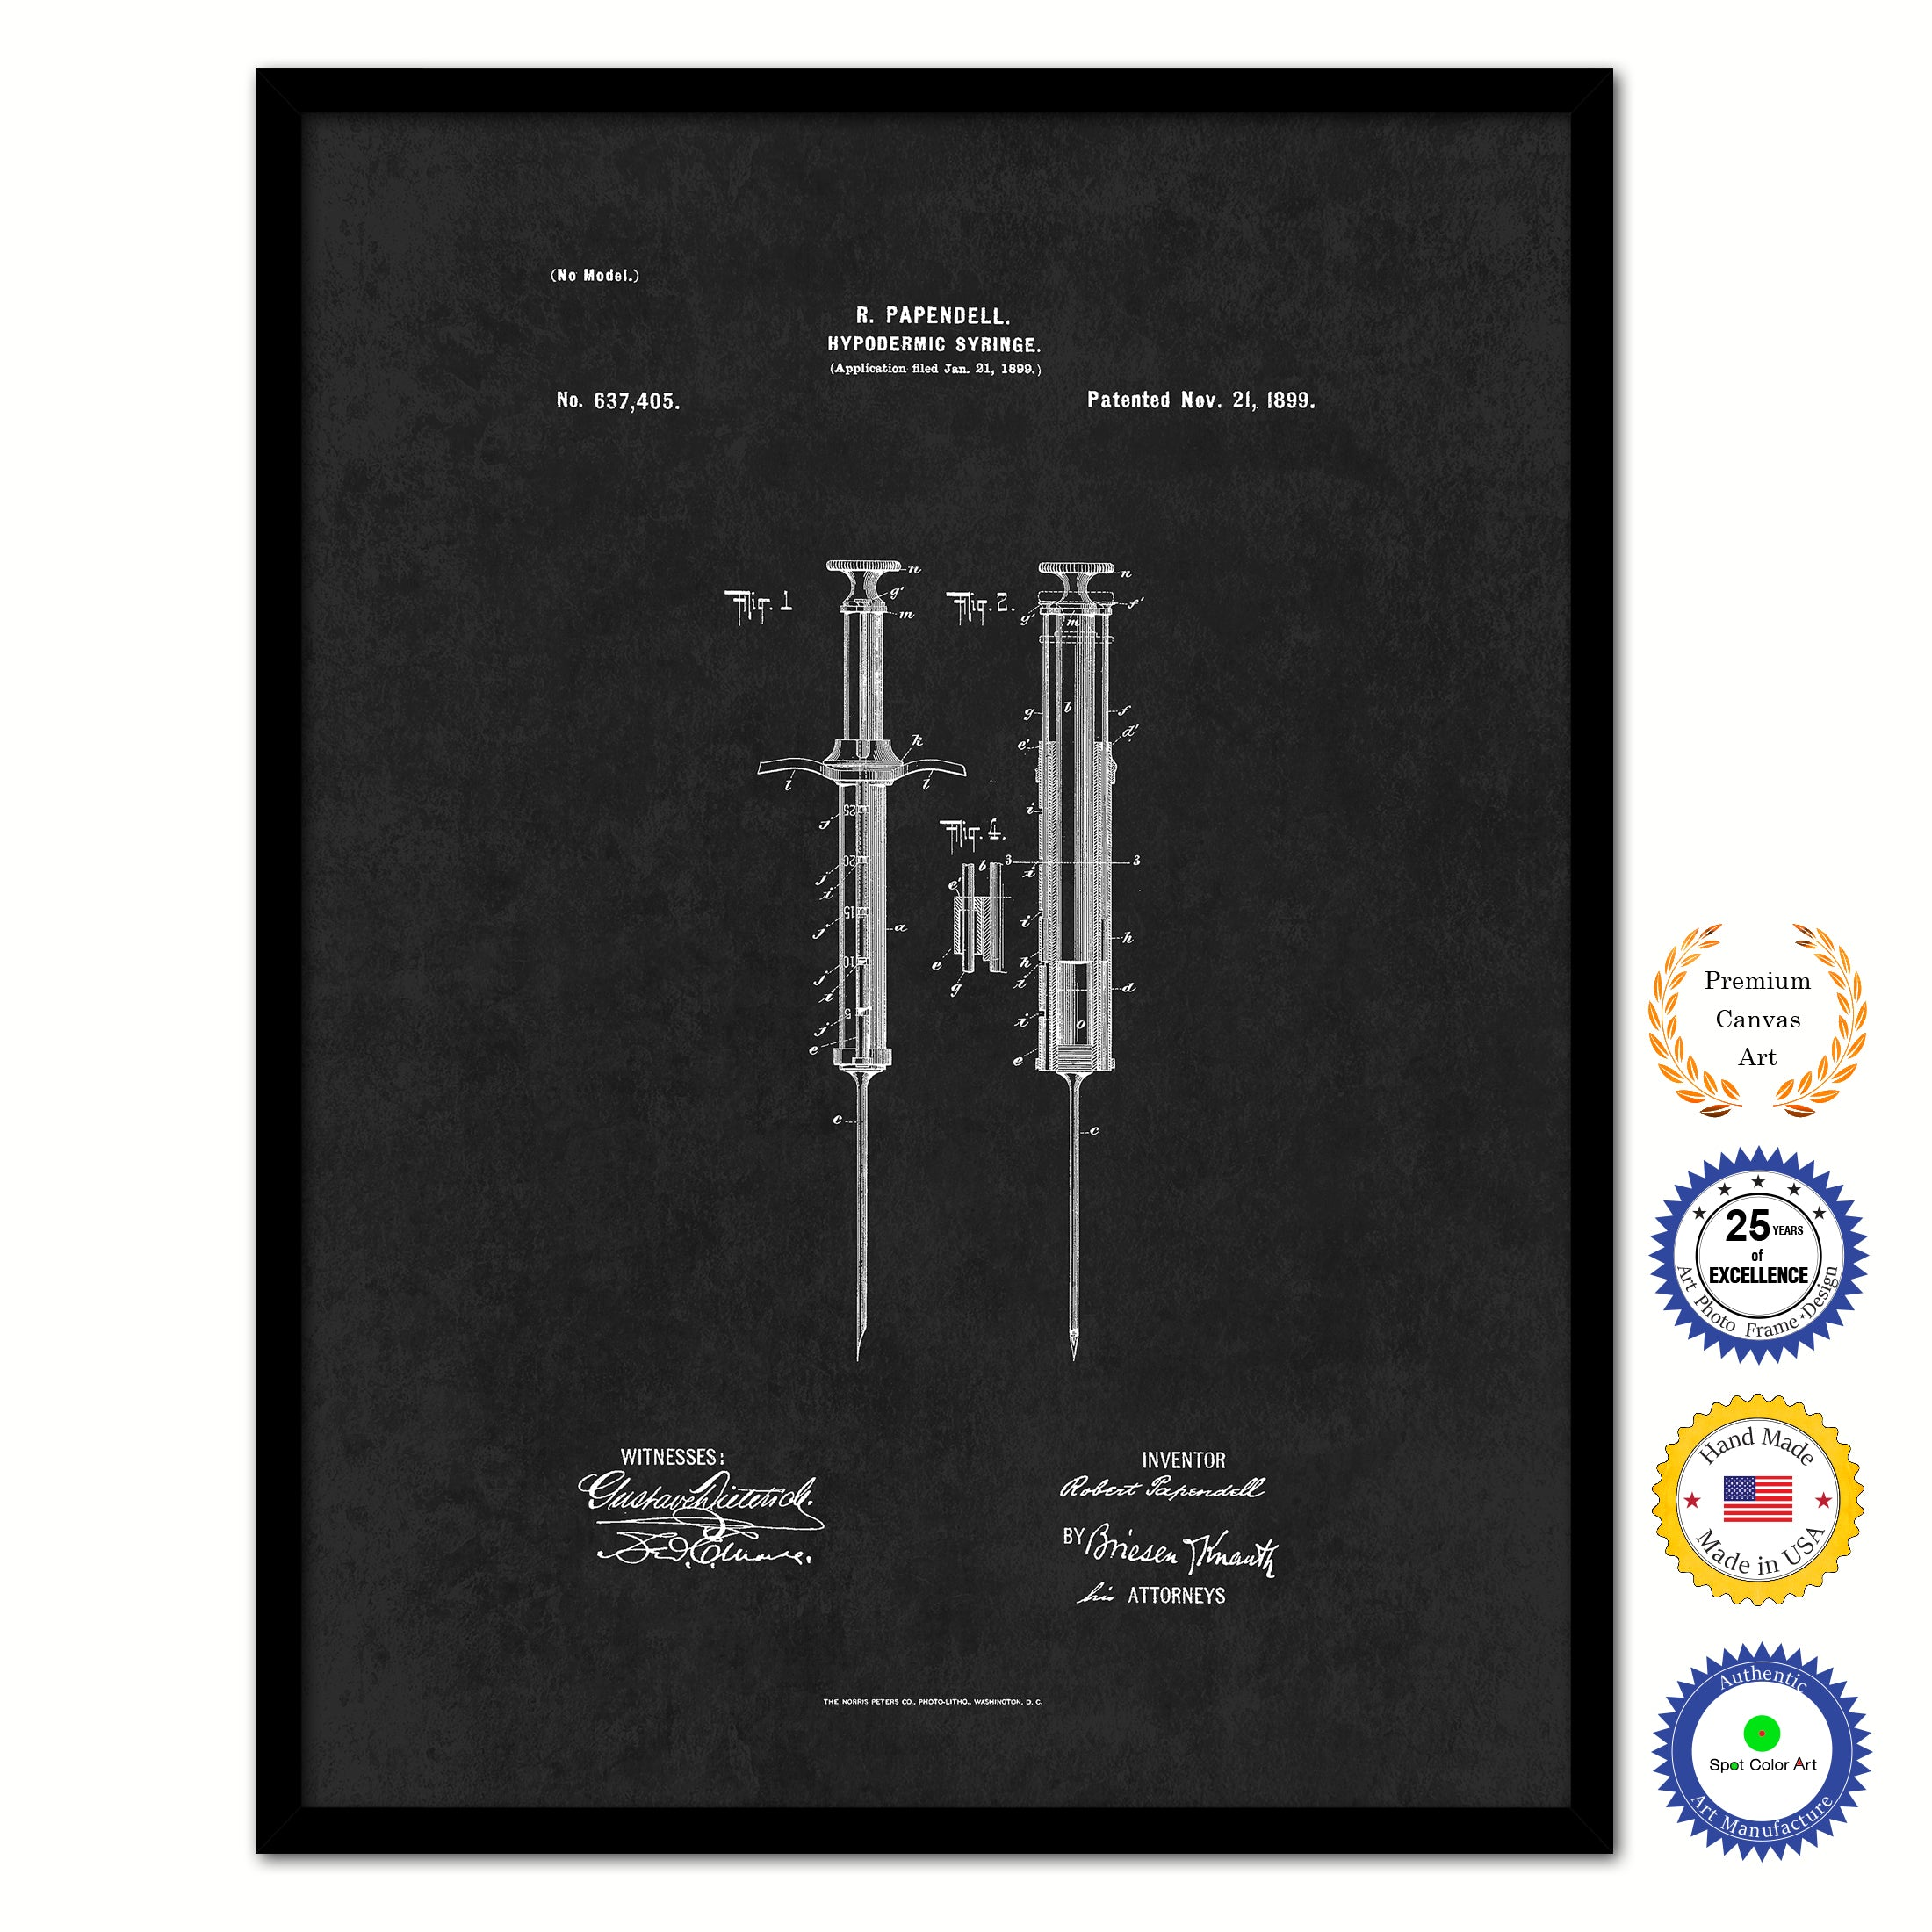 1899 Doctor Hypodermic Syringe Vintage Patent Artwork Black Framed Canvas Home Office Decor Great for Doctor Paramedic Surgeon Hospital Medical Student